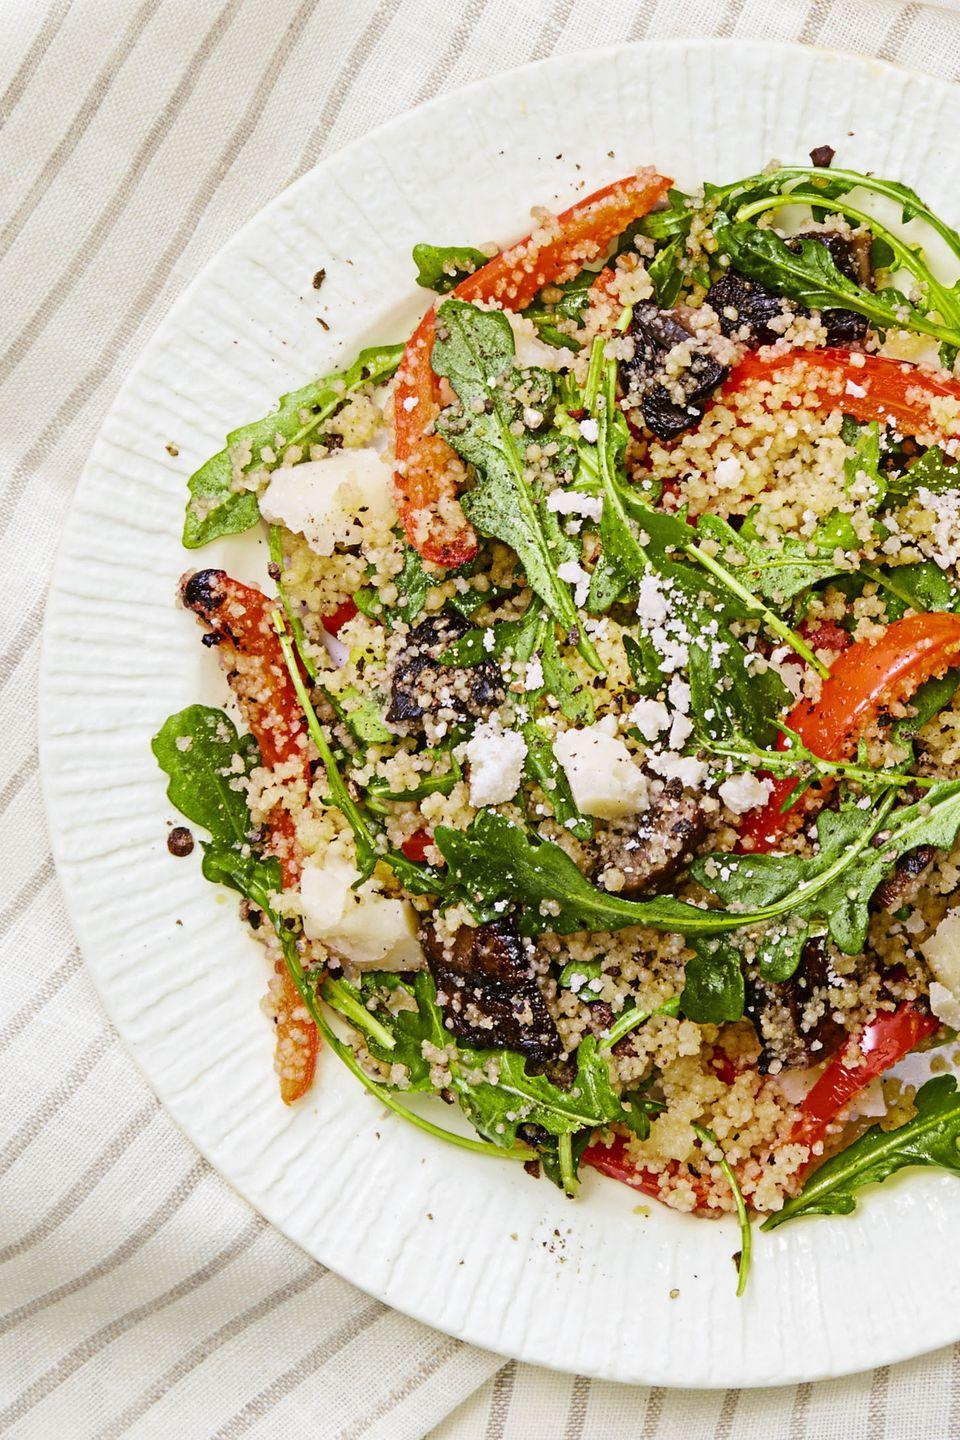 """<p>Meaty portobello mushrooms, grilled red peppers, and chunks of Pecorino make this meatless salad a satisfying supper.</p><p><em><a href=""""https://www.goodhousekeeping.com/food-recipes/easy/a33405/grilled-veggie-couscous-salad/"""" rel=""""nofollow noopener"""" target=""""_blank"""" data-ylk=""""slk:Get the recipe for Grilled Veggie Couscous Salad »"""" class=""""link rapid-noclick-resp"""">Get the recipe for Grilled Veggie Couscous Salad »</a></em></p>"""